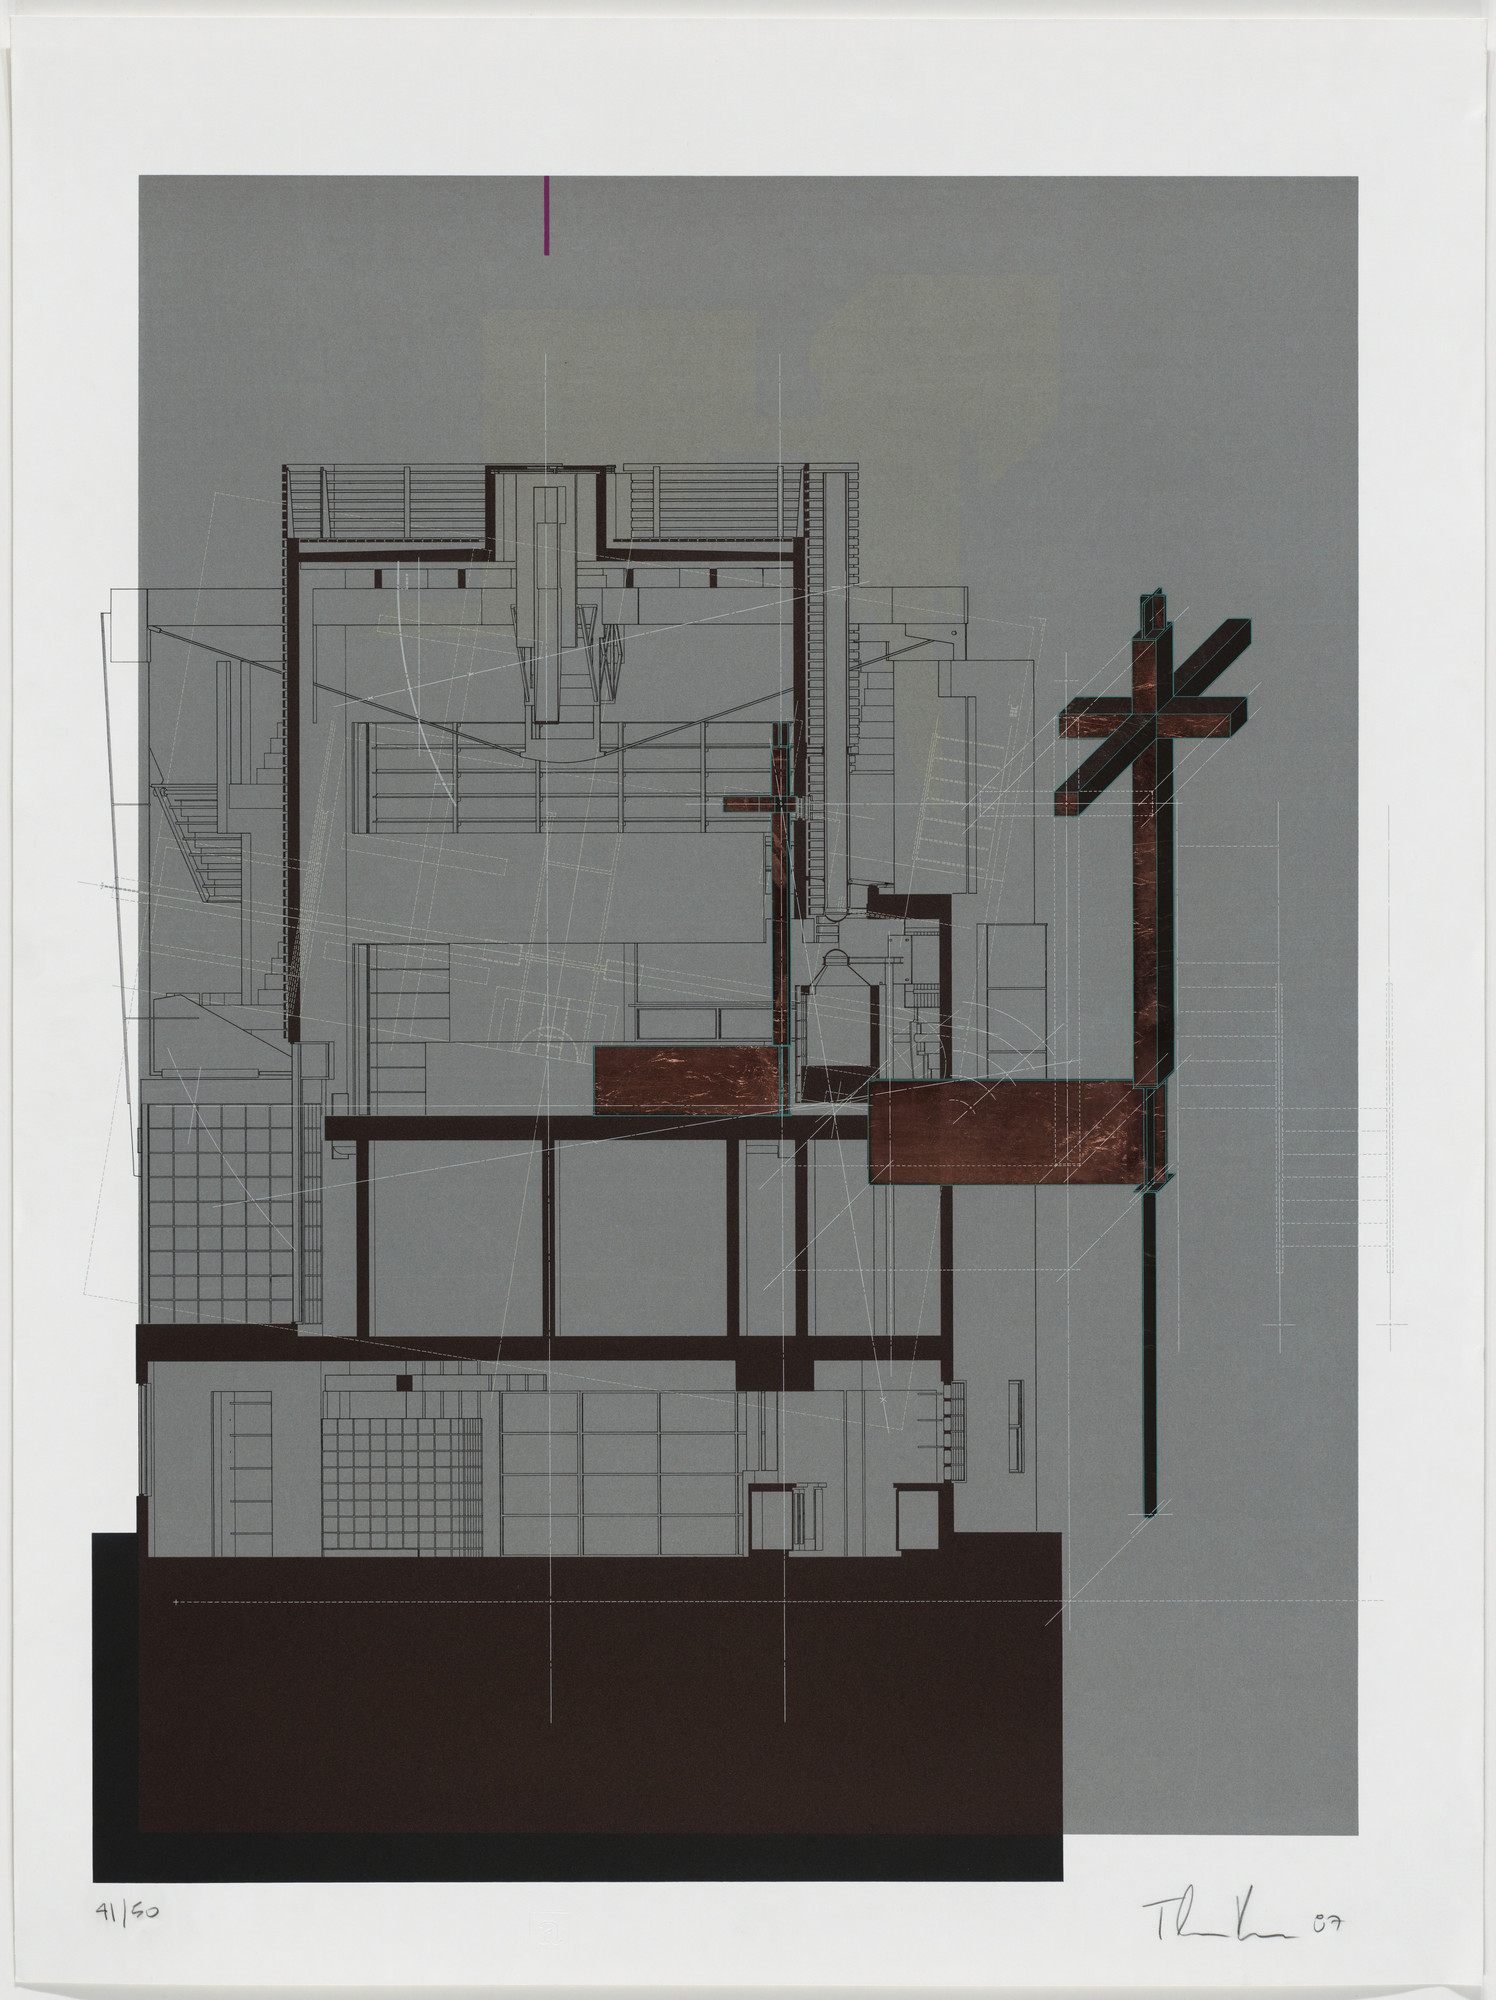 Thom Mayne, Andrew Zago. Sixth Street House project, Santa Monica, California, Sixth Street: Figure 2. 1987